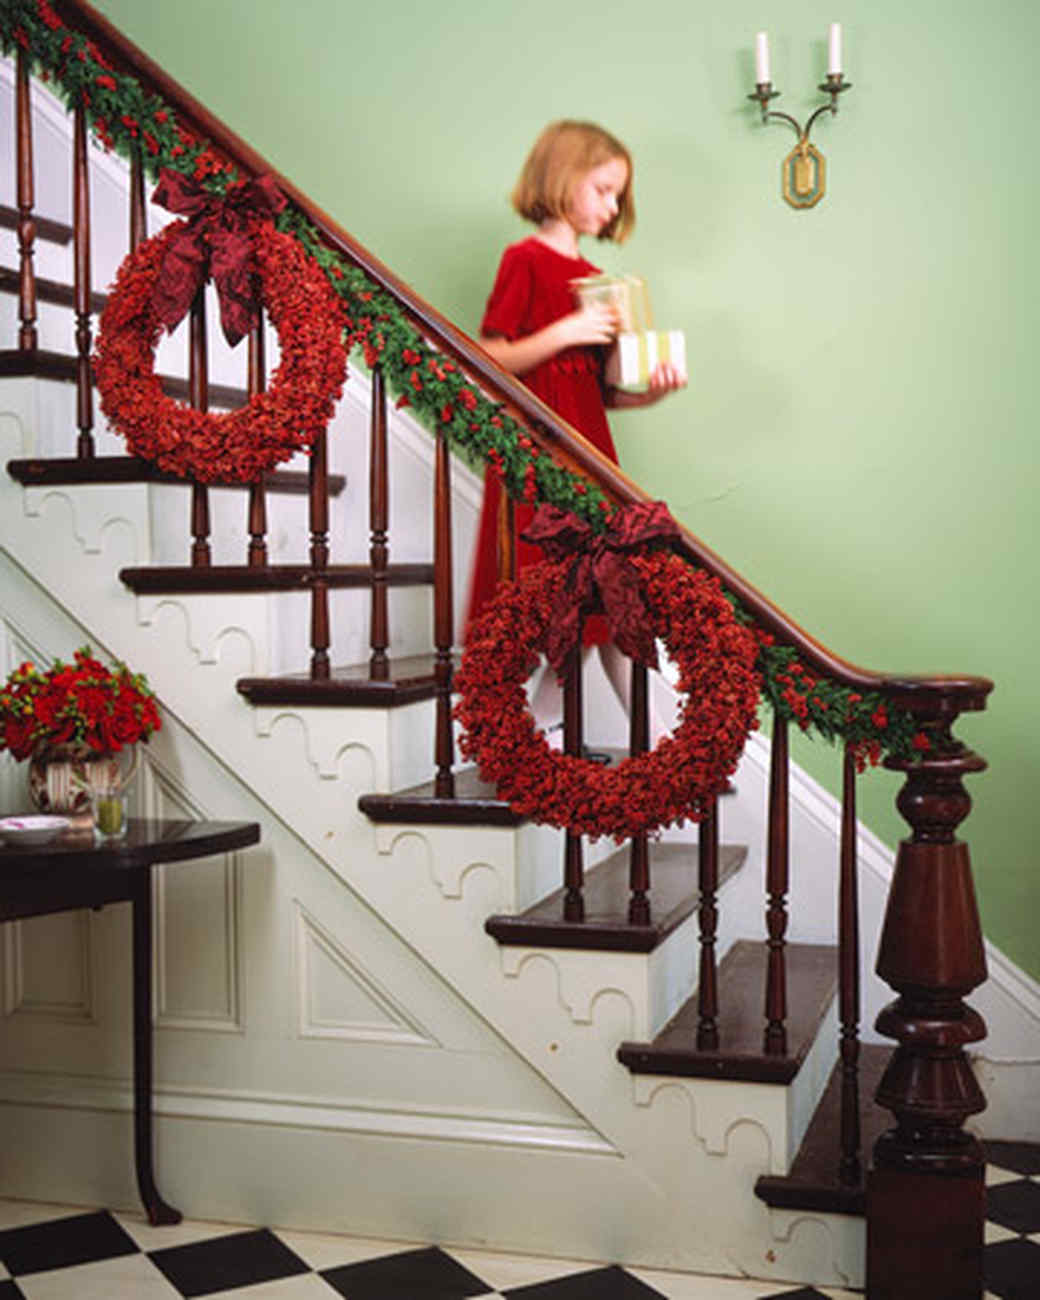 Christmas Decorations Holiday Decorations Decor: Christmas Decorating Ideas